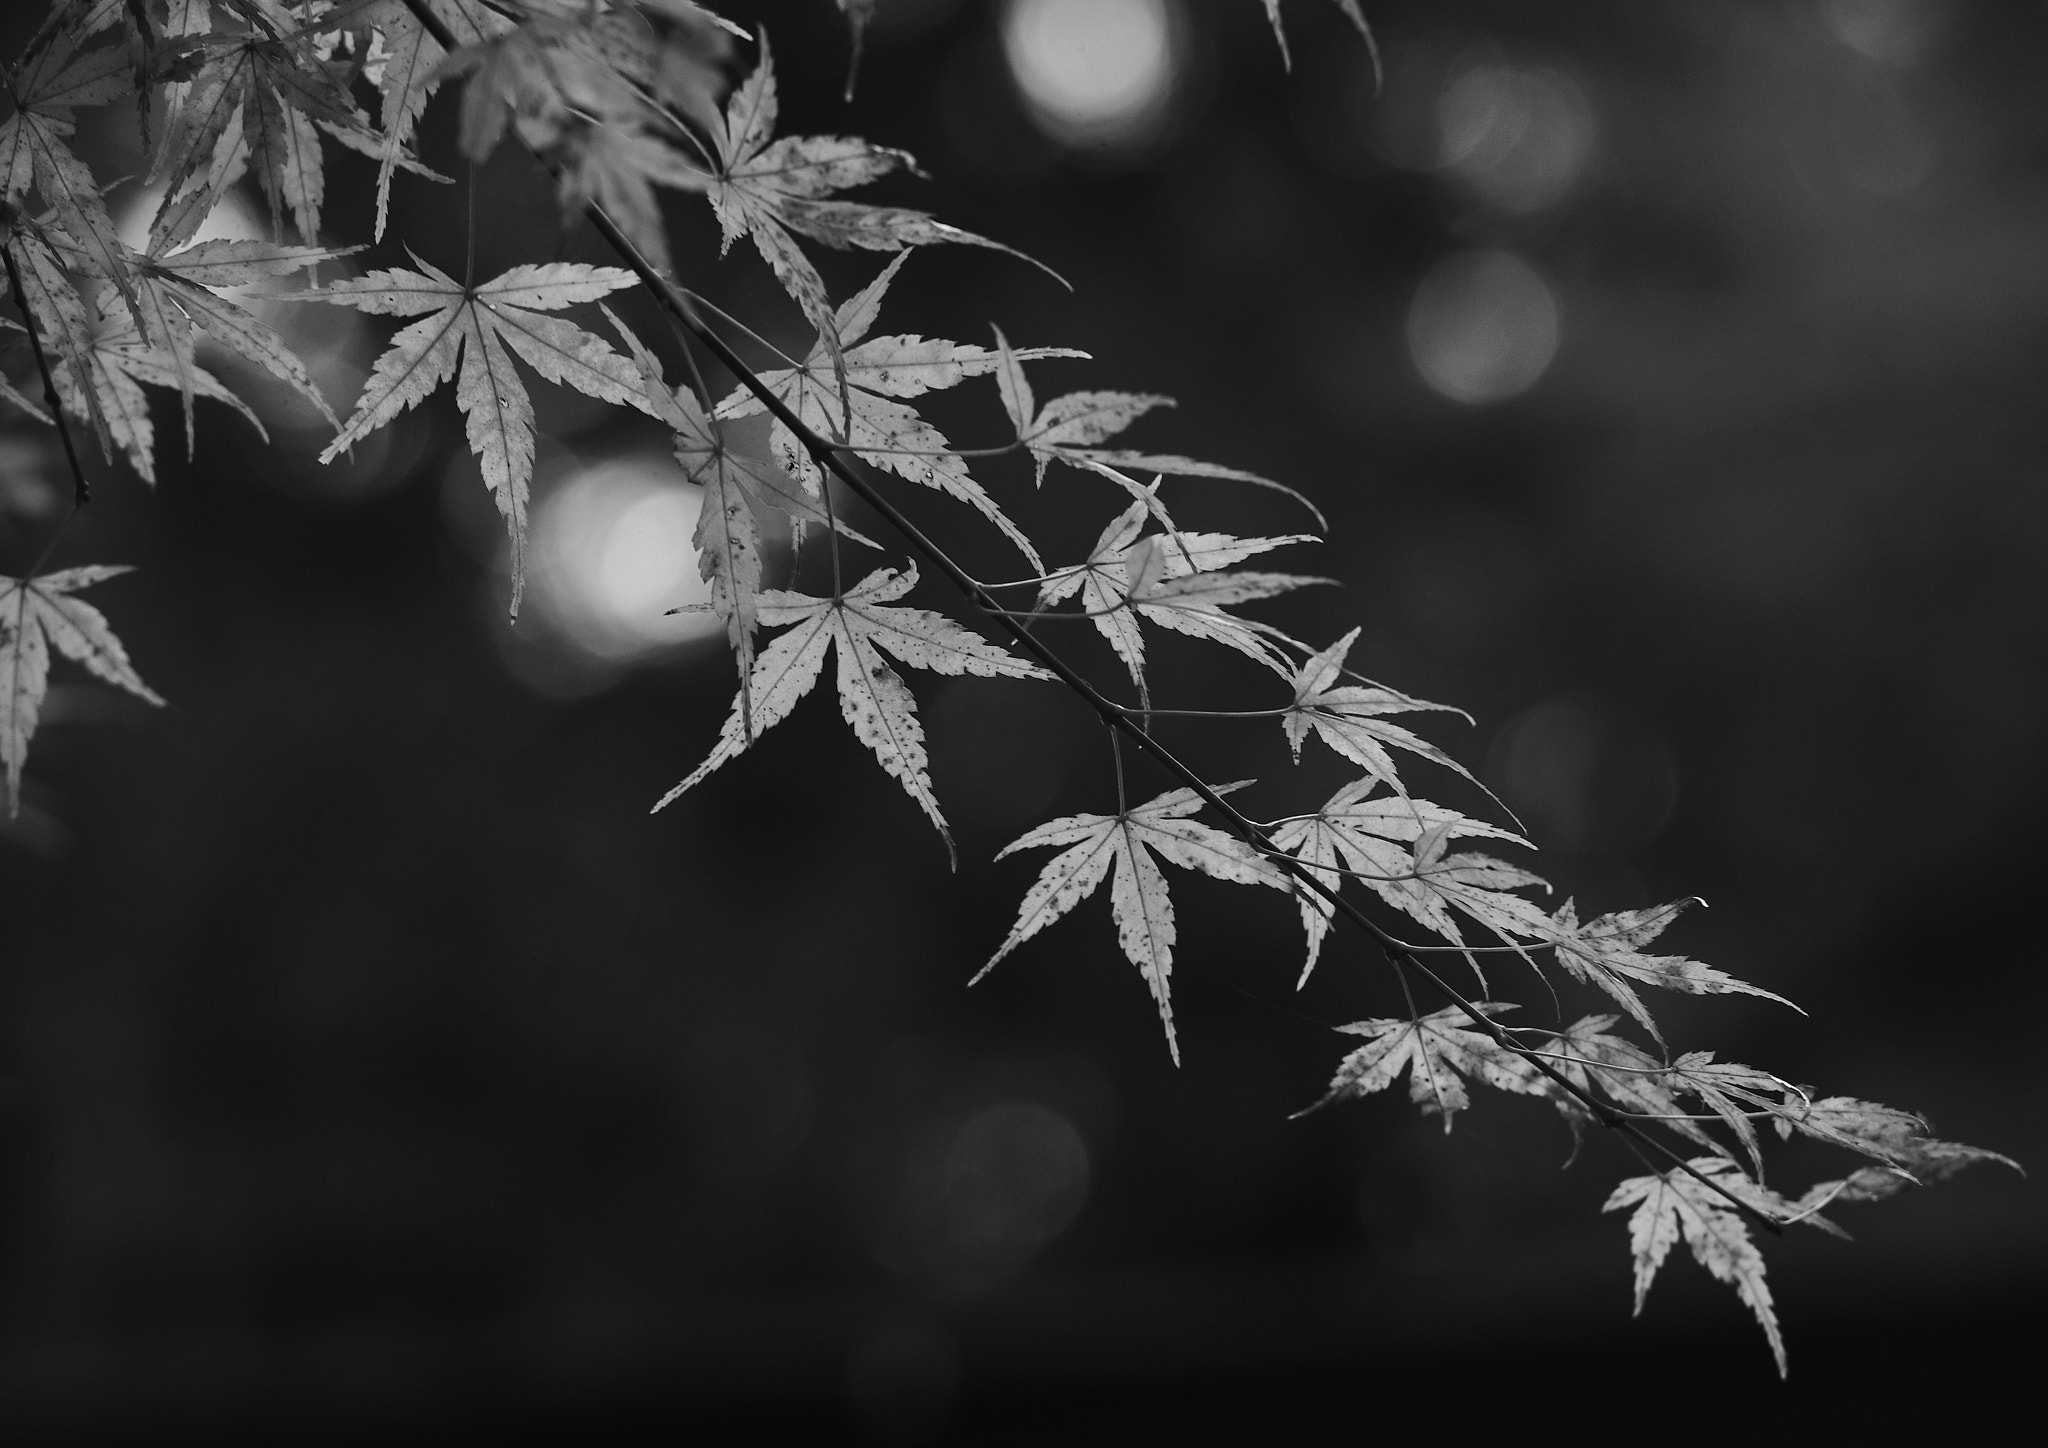 Photograph B&W by Chihiro Imahashi on 500px